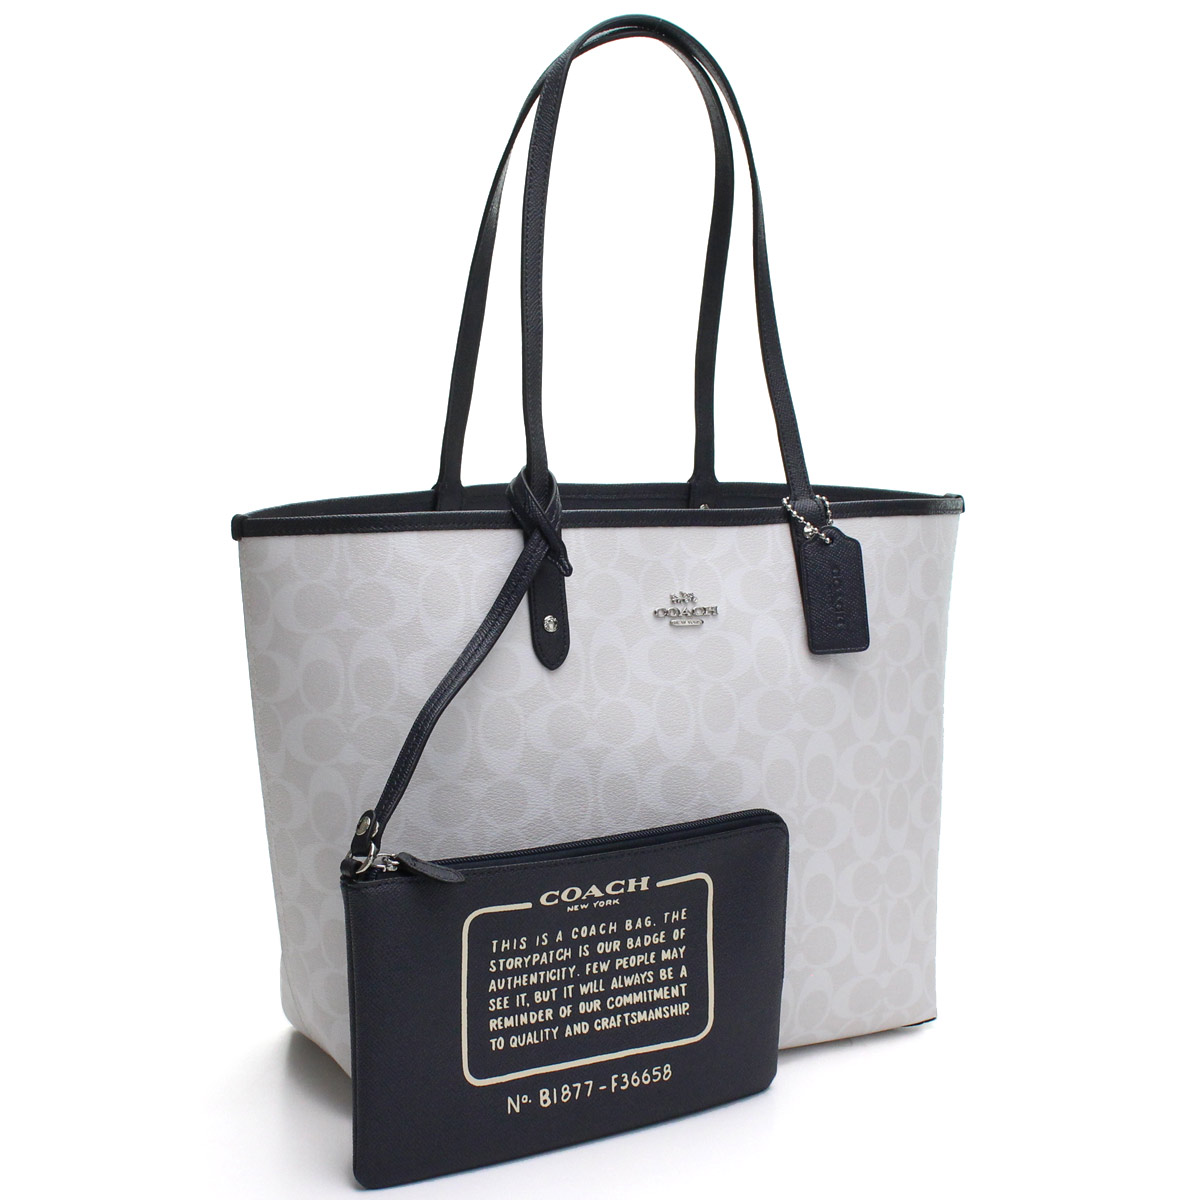 d852c331b29c Bighit The total brand wholesale  Reversible tote bag F36658 SVDYF white  system navy system with the coach COACH porch